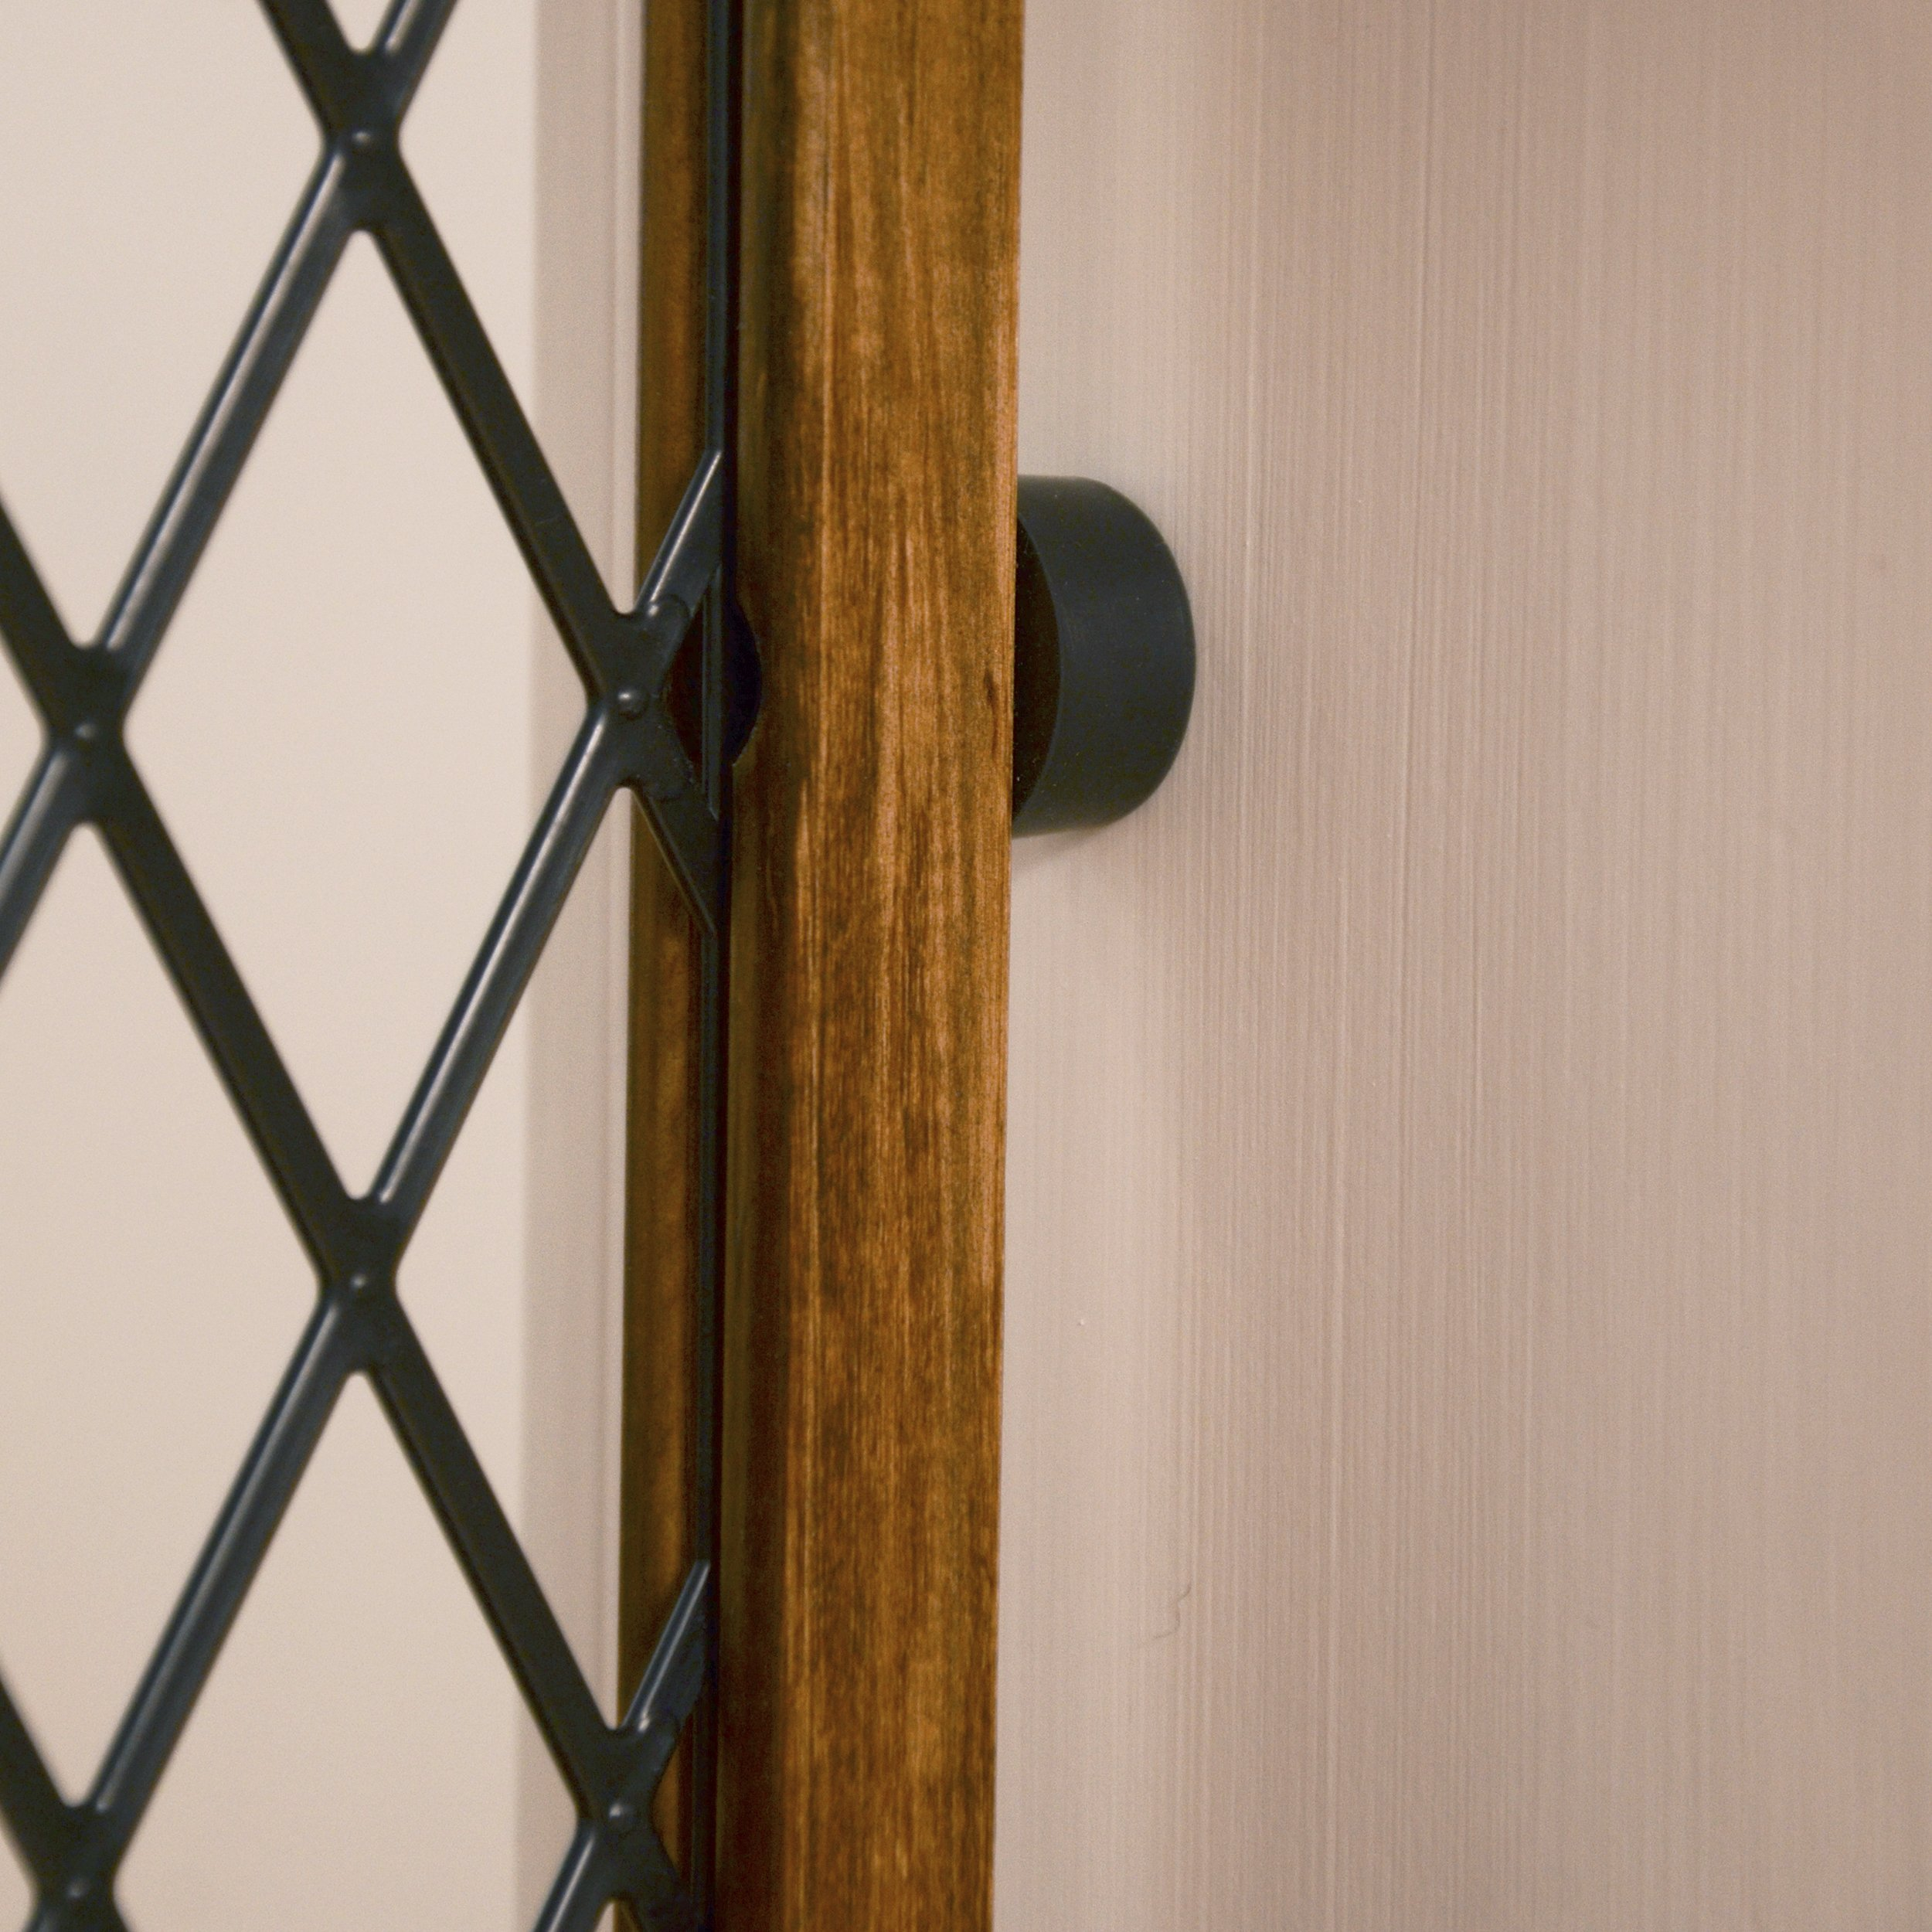 Evenflo Position and Lock Farmhouse Pressure Mount Gate, Dark Wood by Evenflo (Image #6)